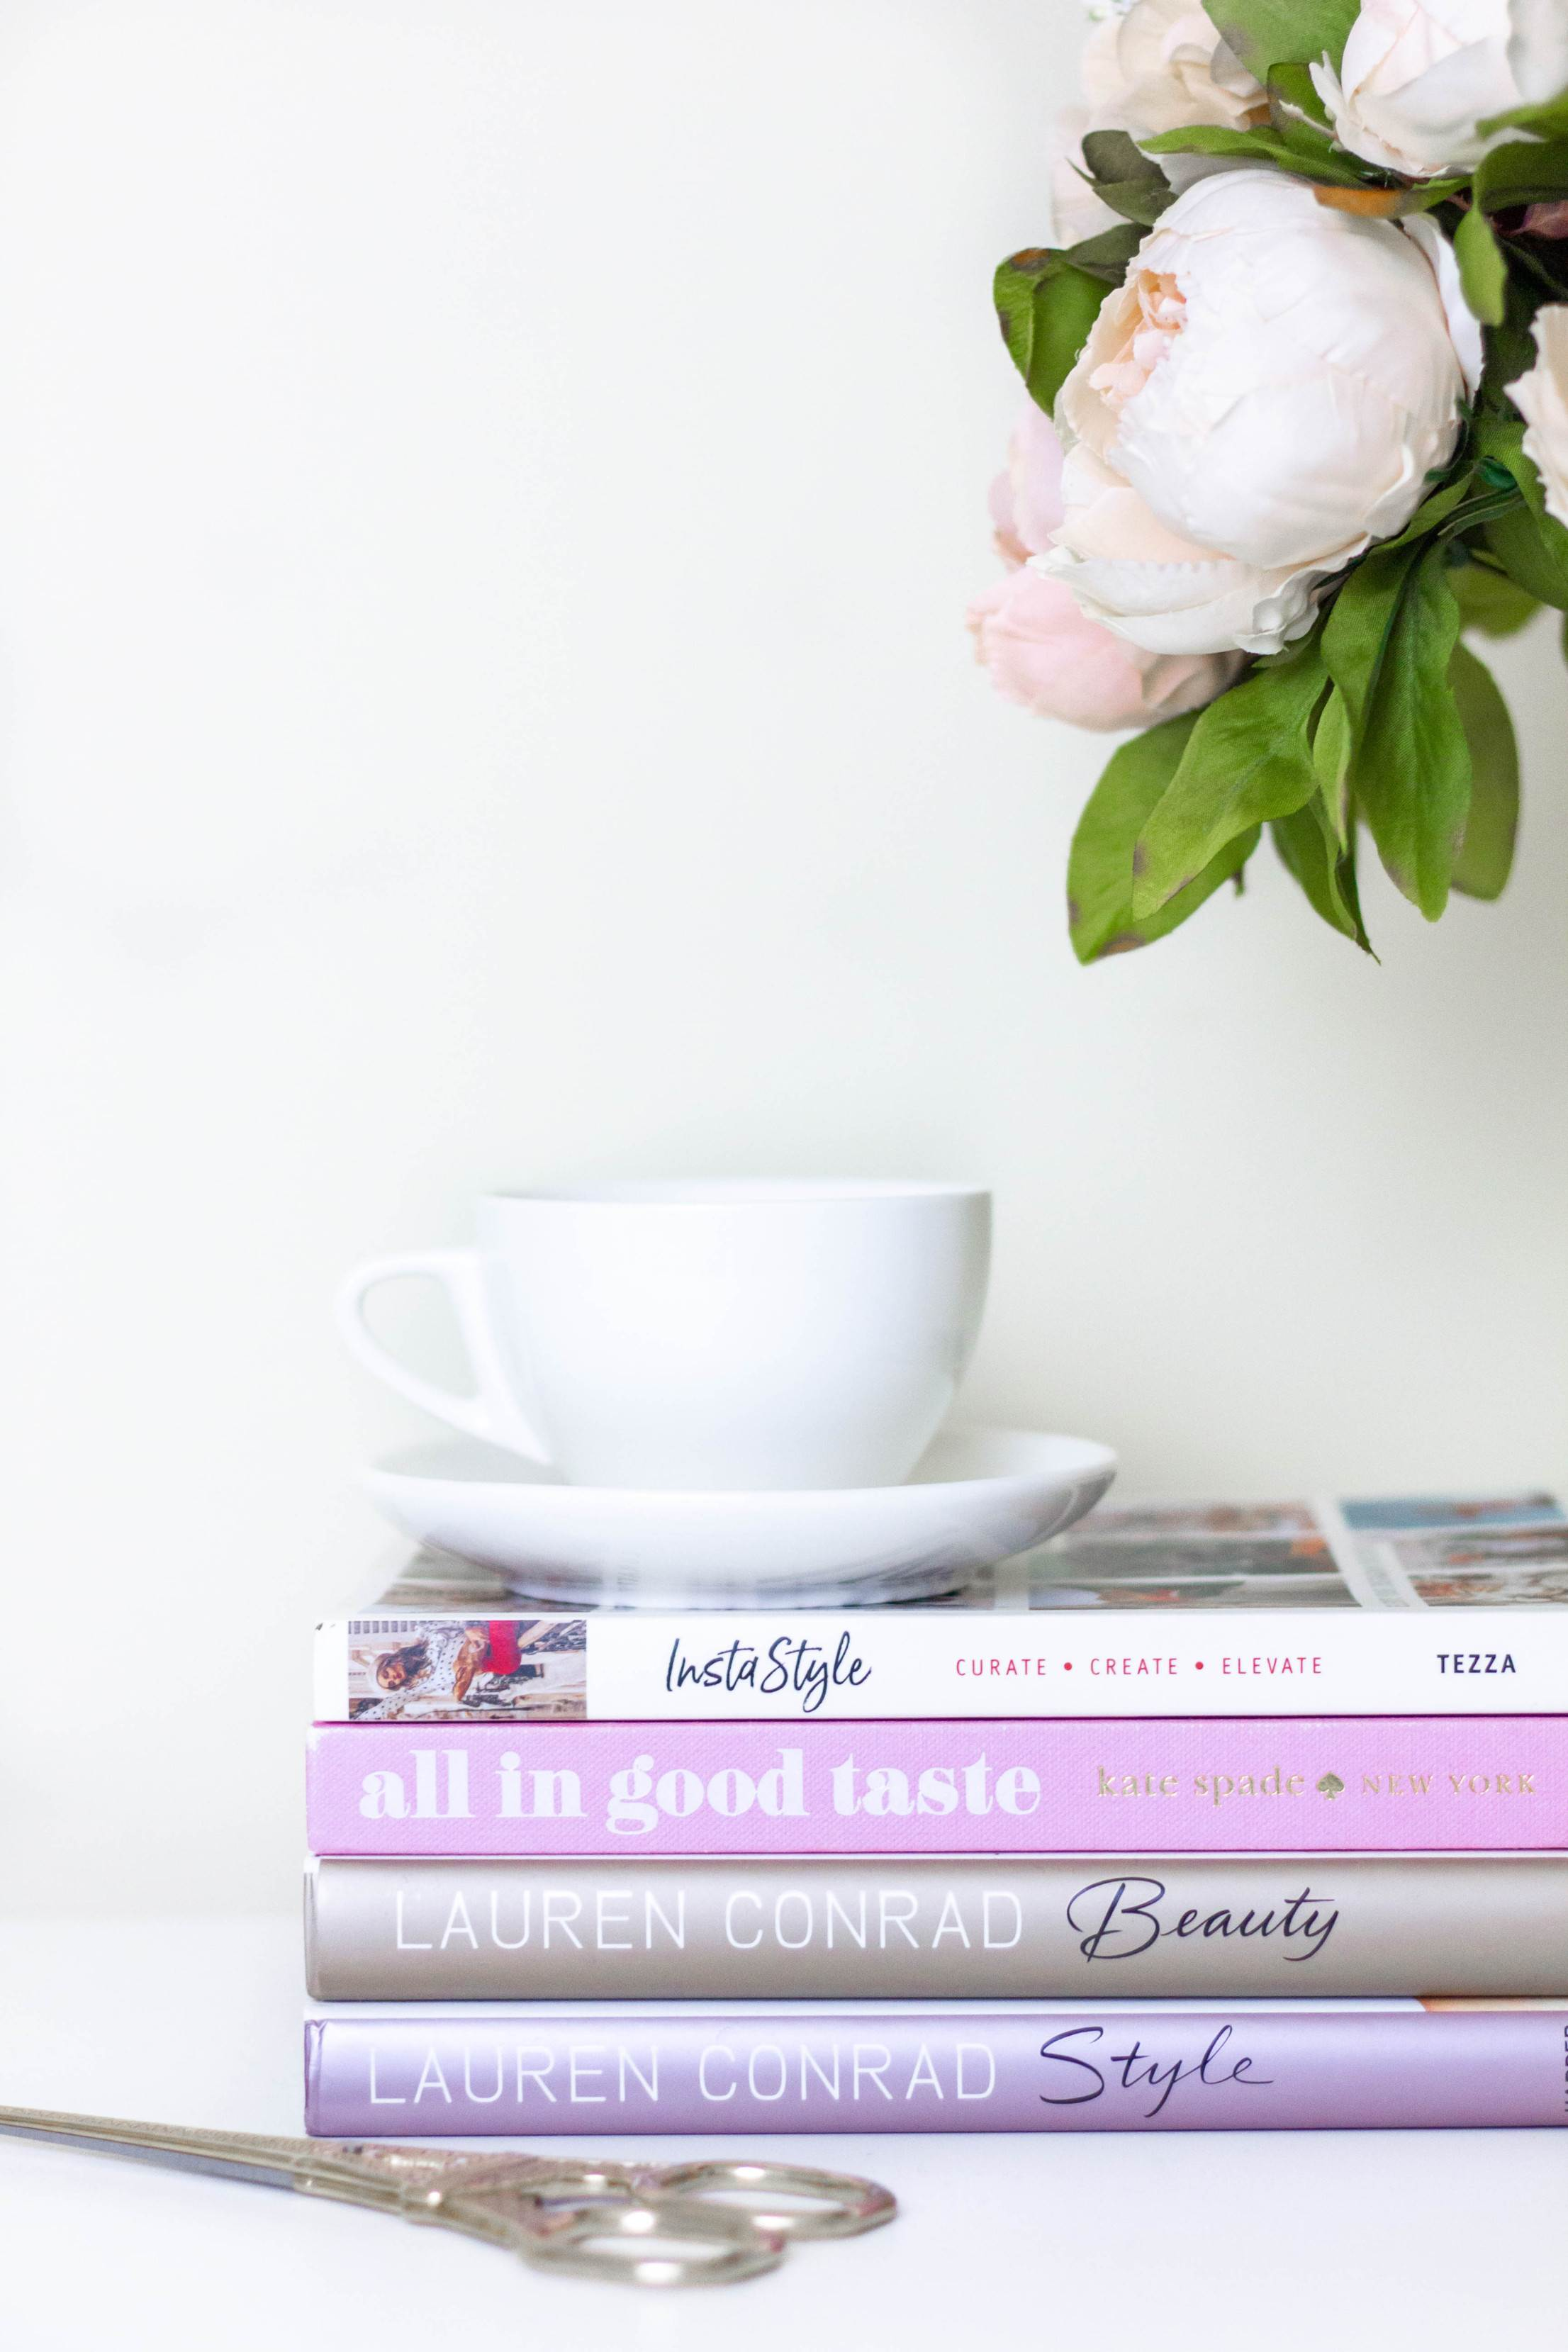 15 Books to Add to Your Reading List in 2019